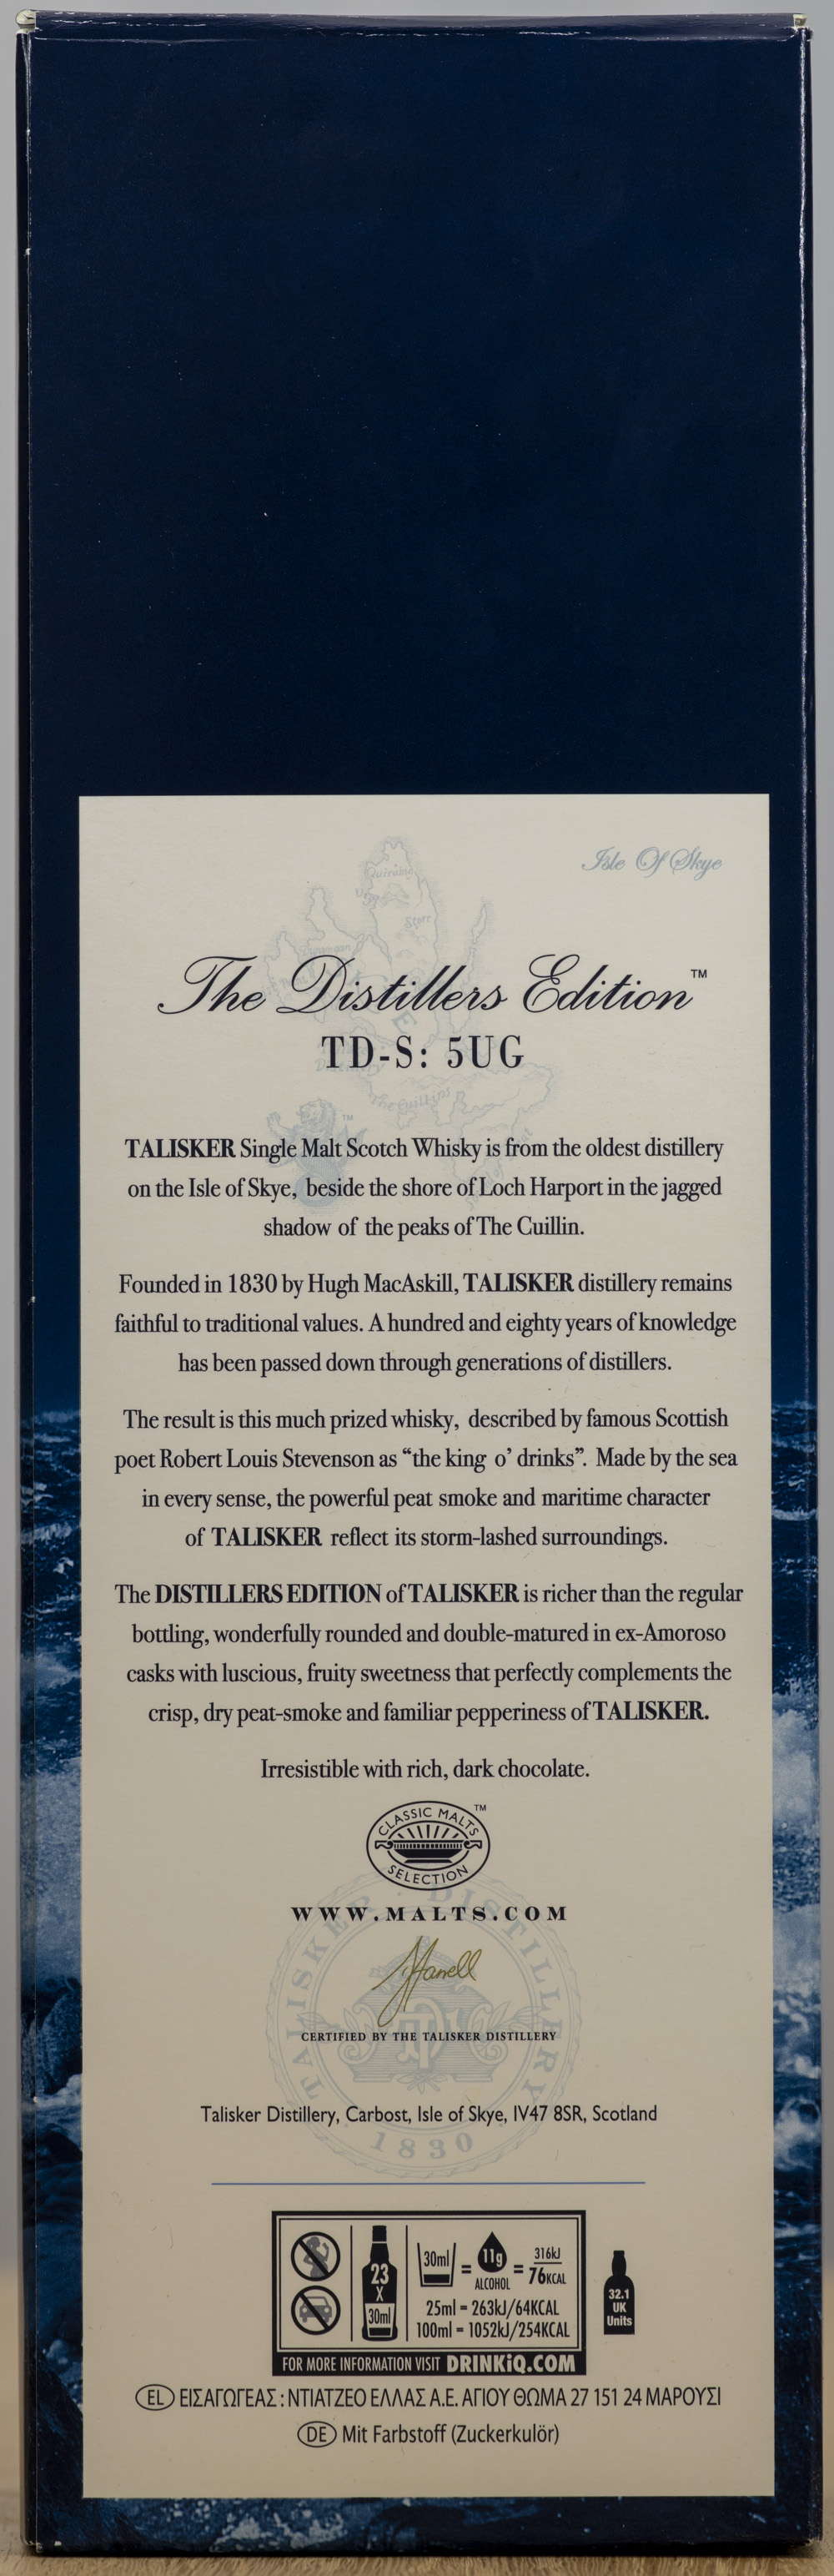 Billede: PHC_1581 - Talisker Distillers Edition - box back.jpg